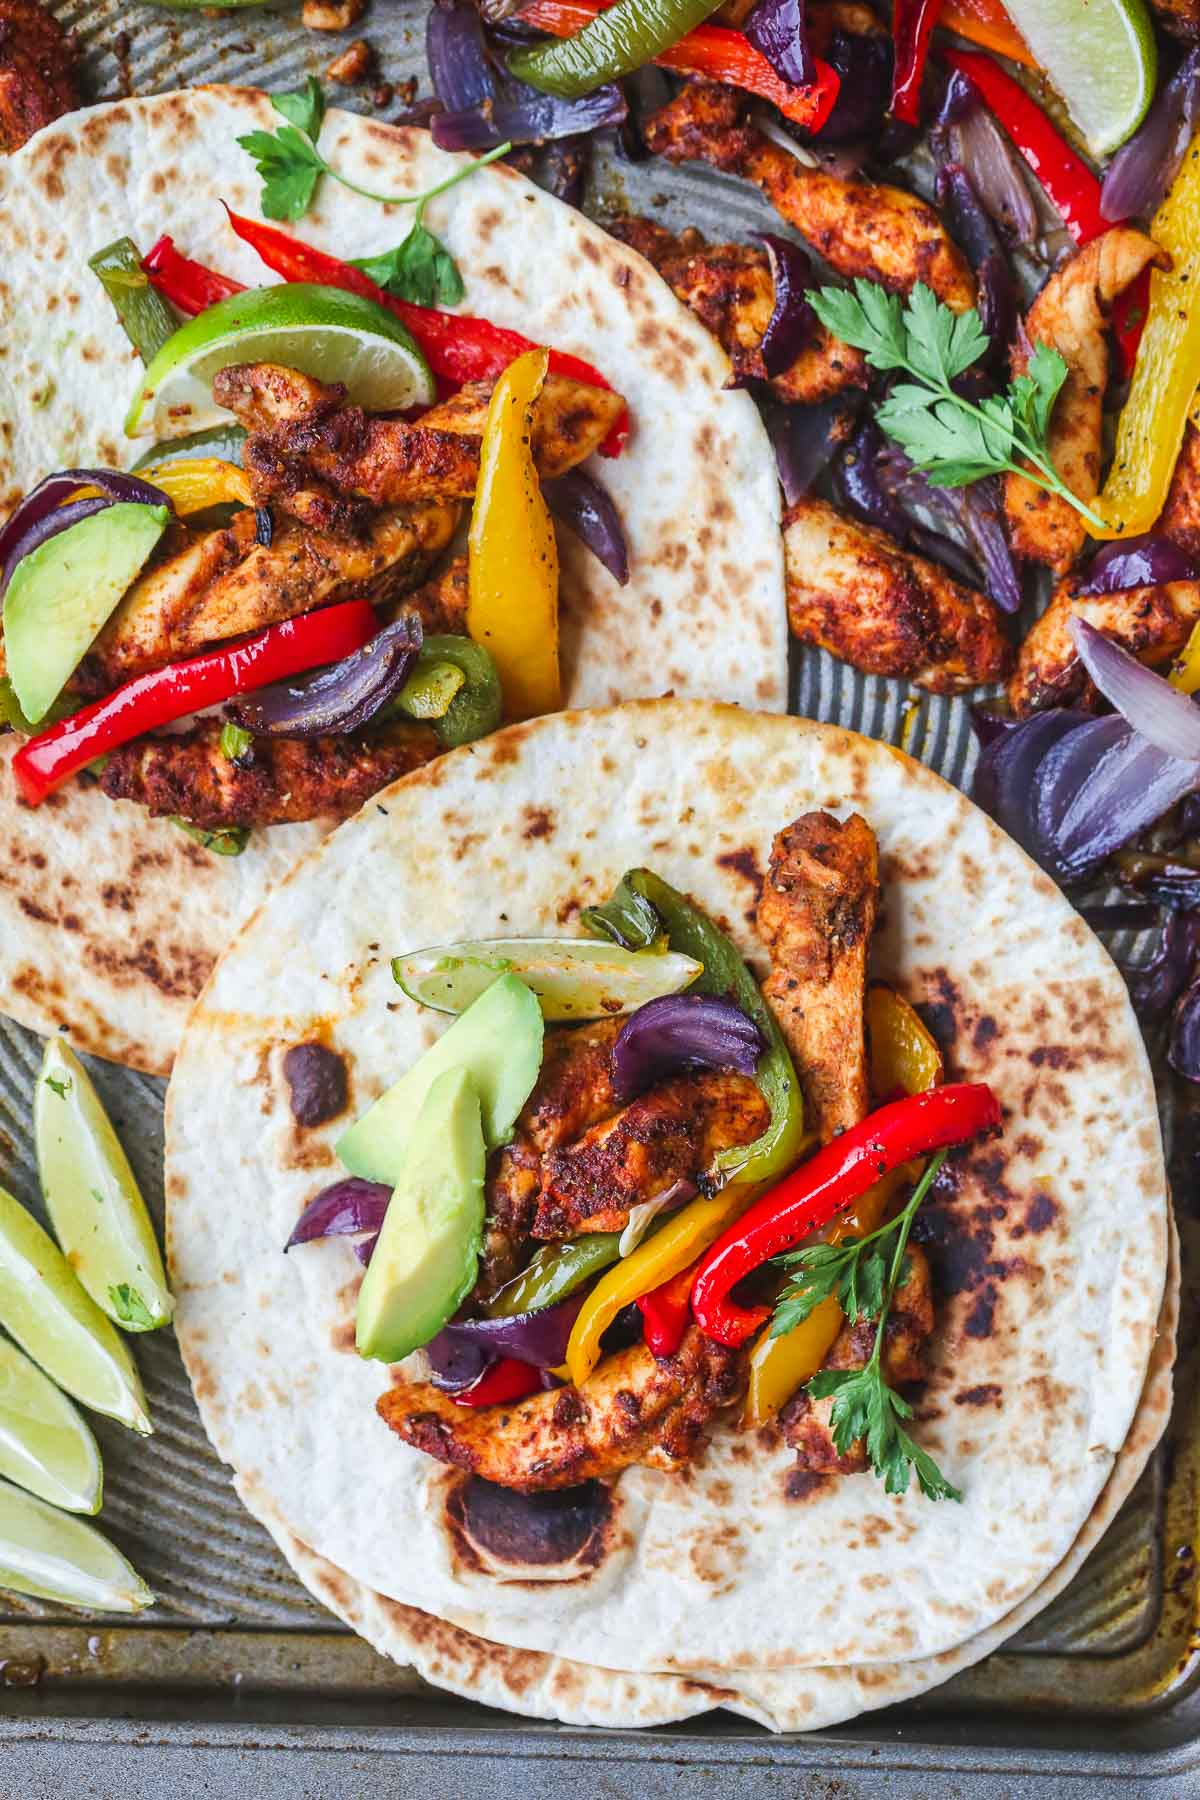 Baked Chicken Fajitas on a sheet pan with tortilla bread and avocado slices